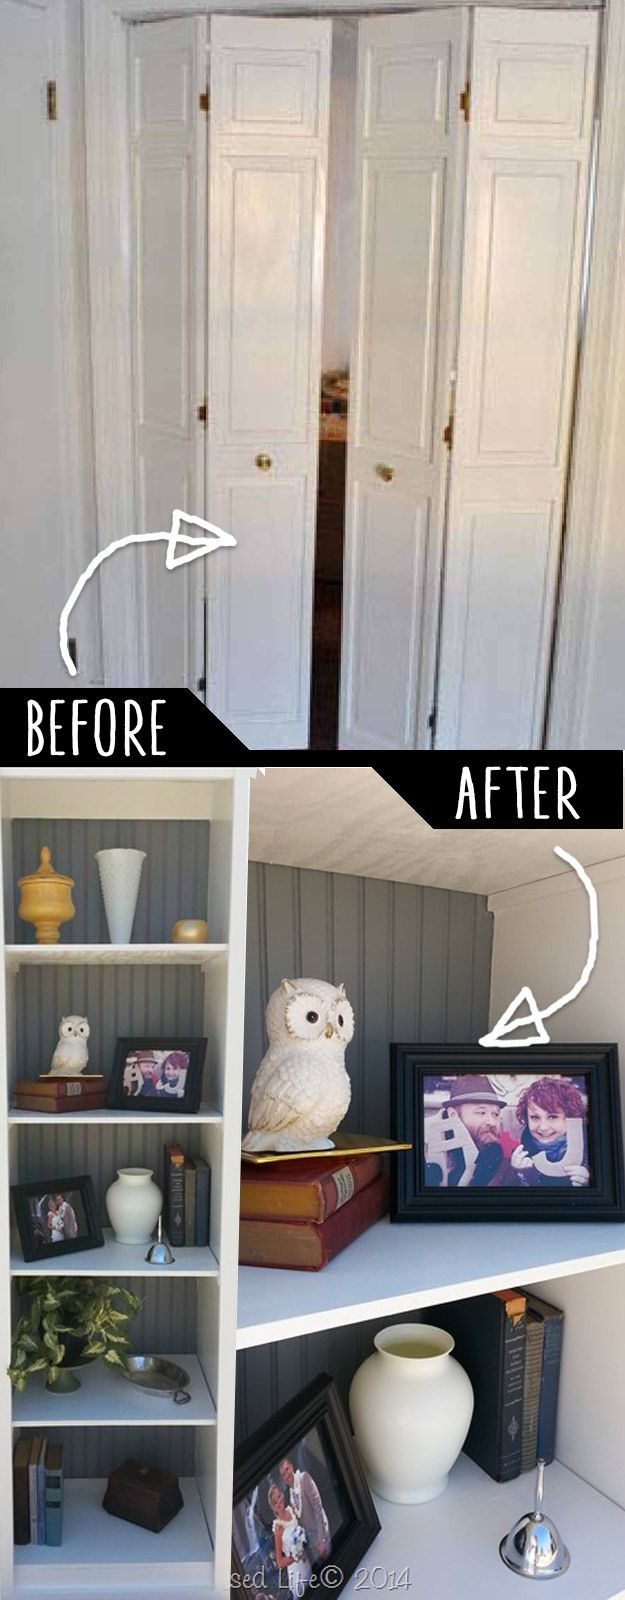 259 best images about diy ideas on pinterest crafts sharpie crafts and refurbished furniture - Do it yourself home decorating ideas on a budget ...